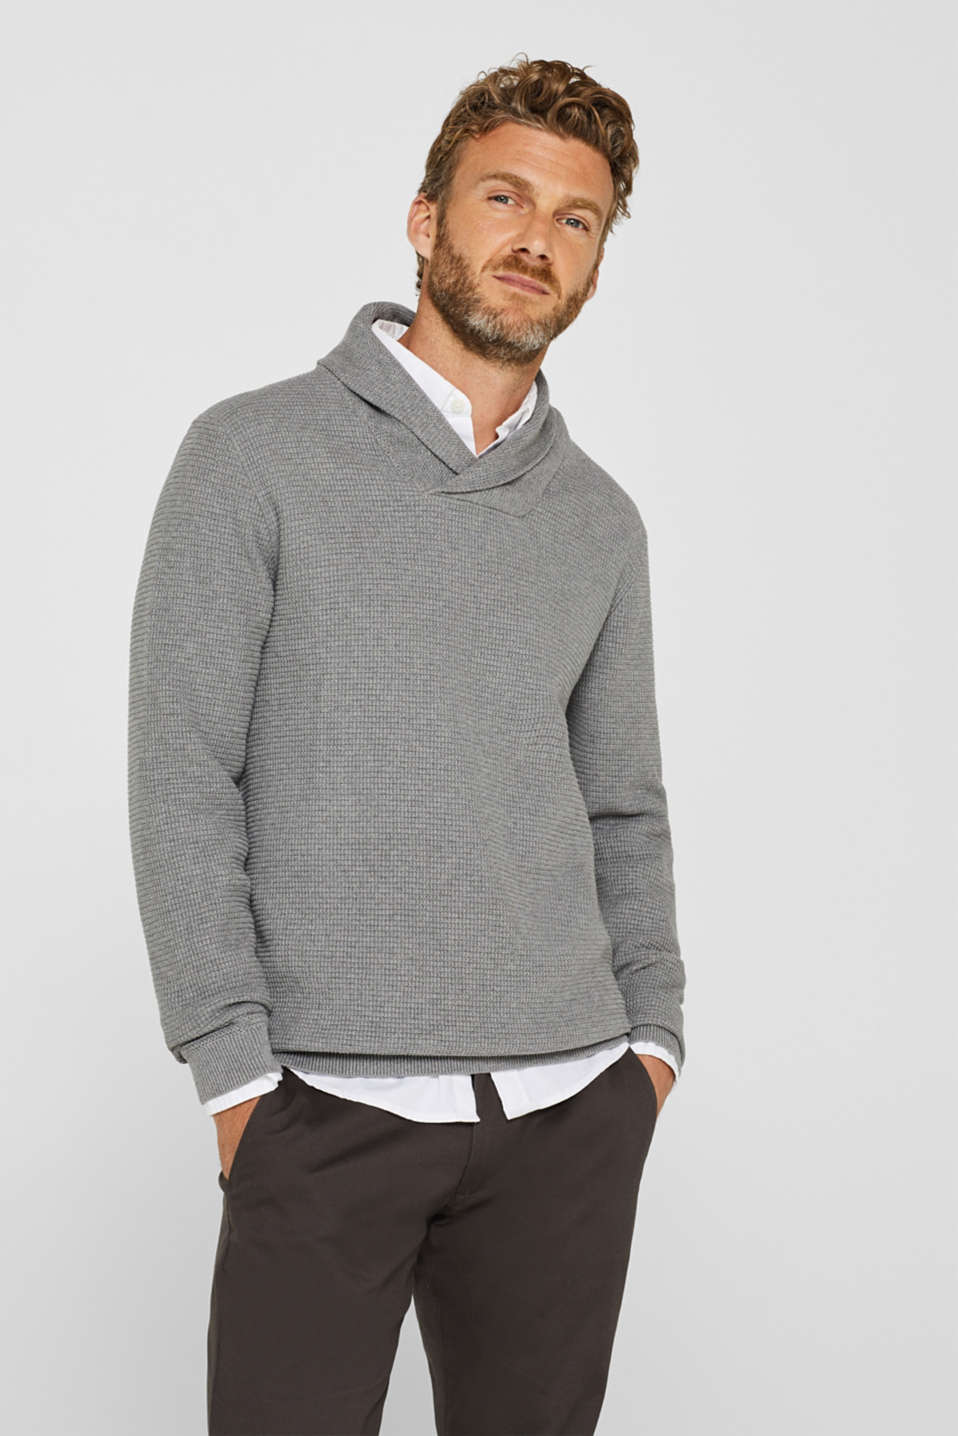 Esprit - Knit jumper made of 100% cotton